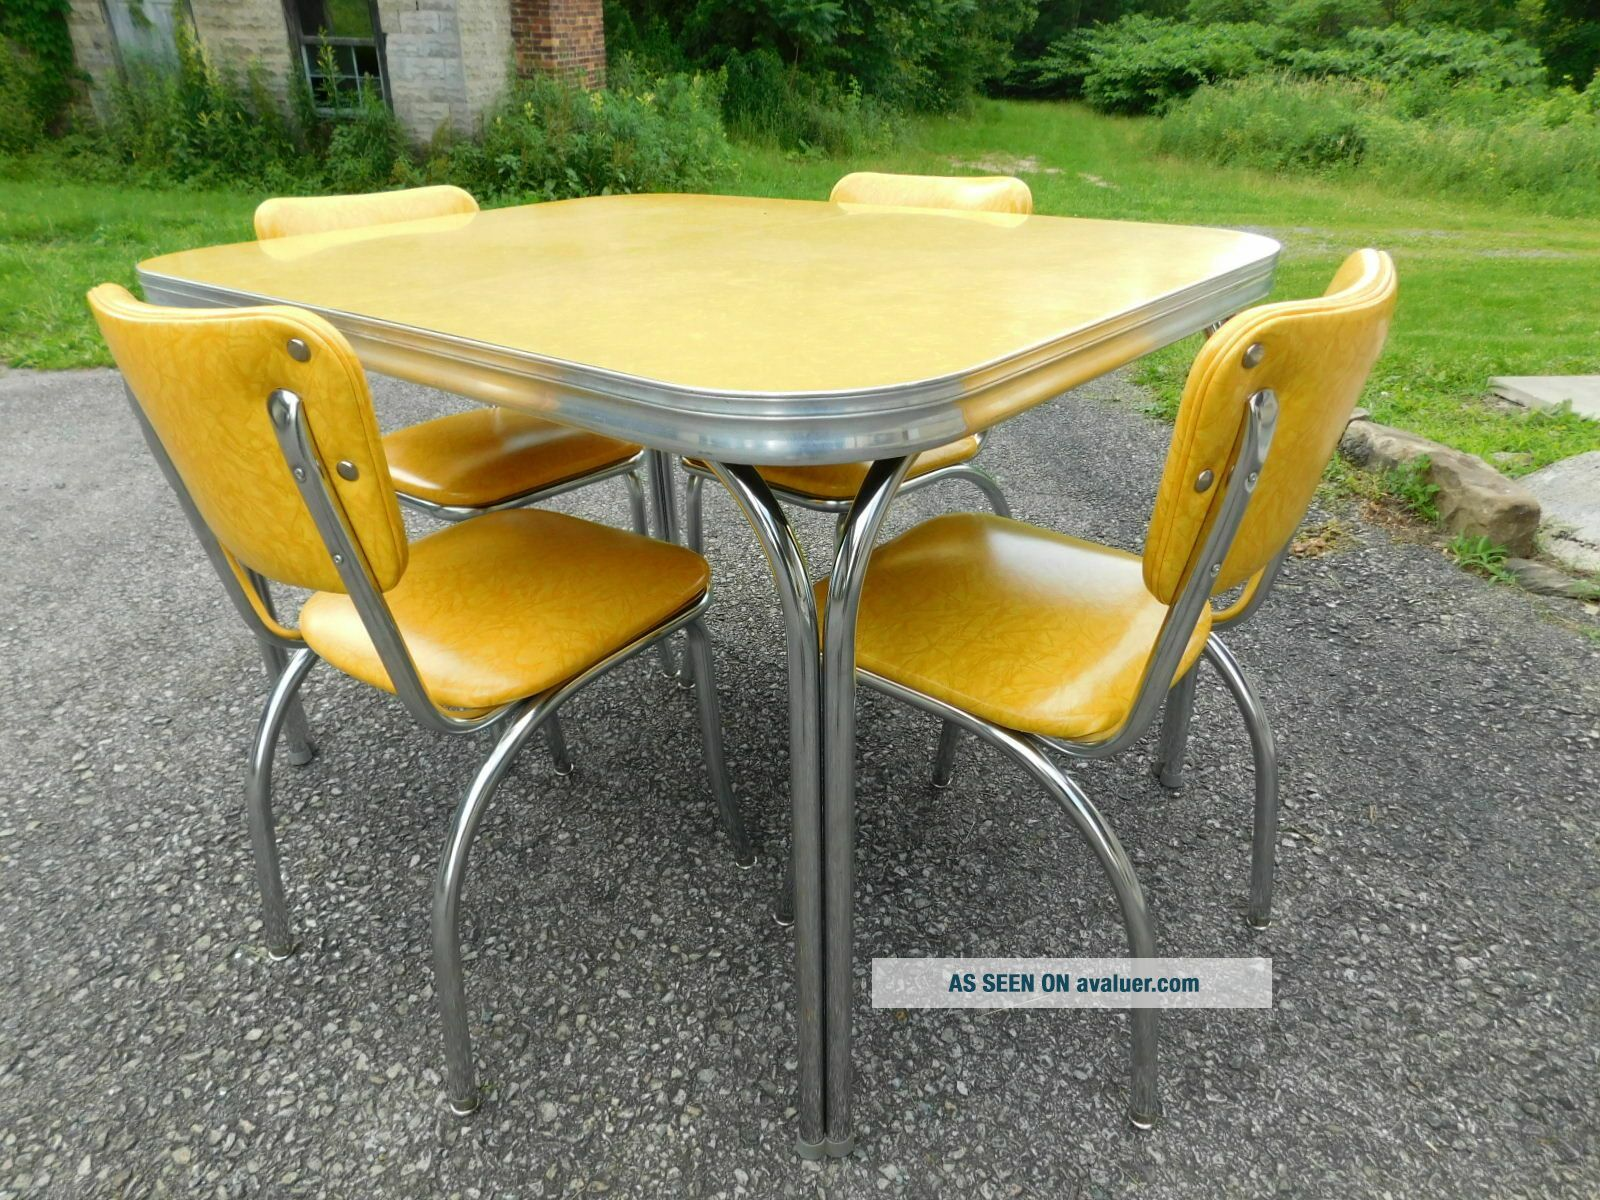 c1955 Completely Restored Retro Chrome Yellow Crackle Kitchen Table & 4 Chairs